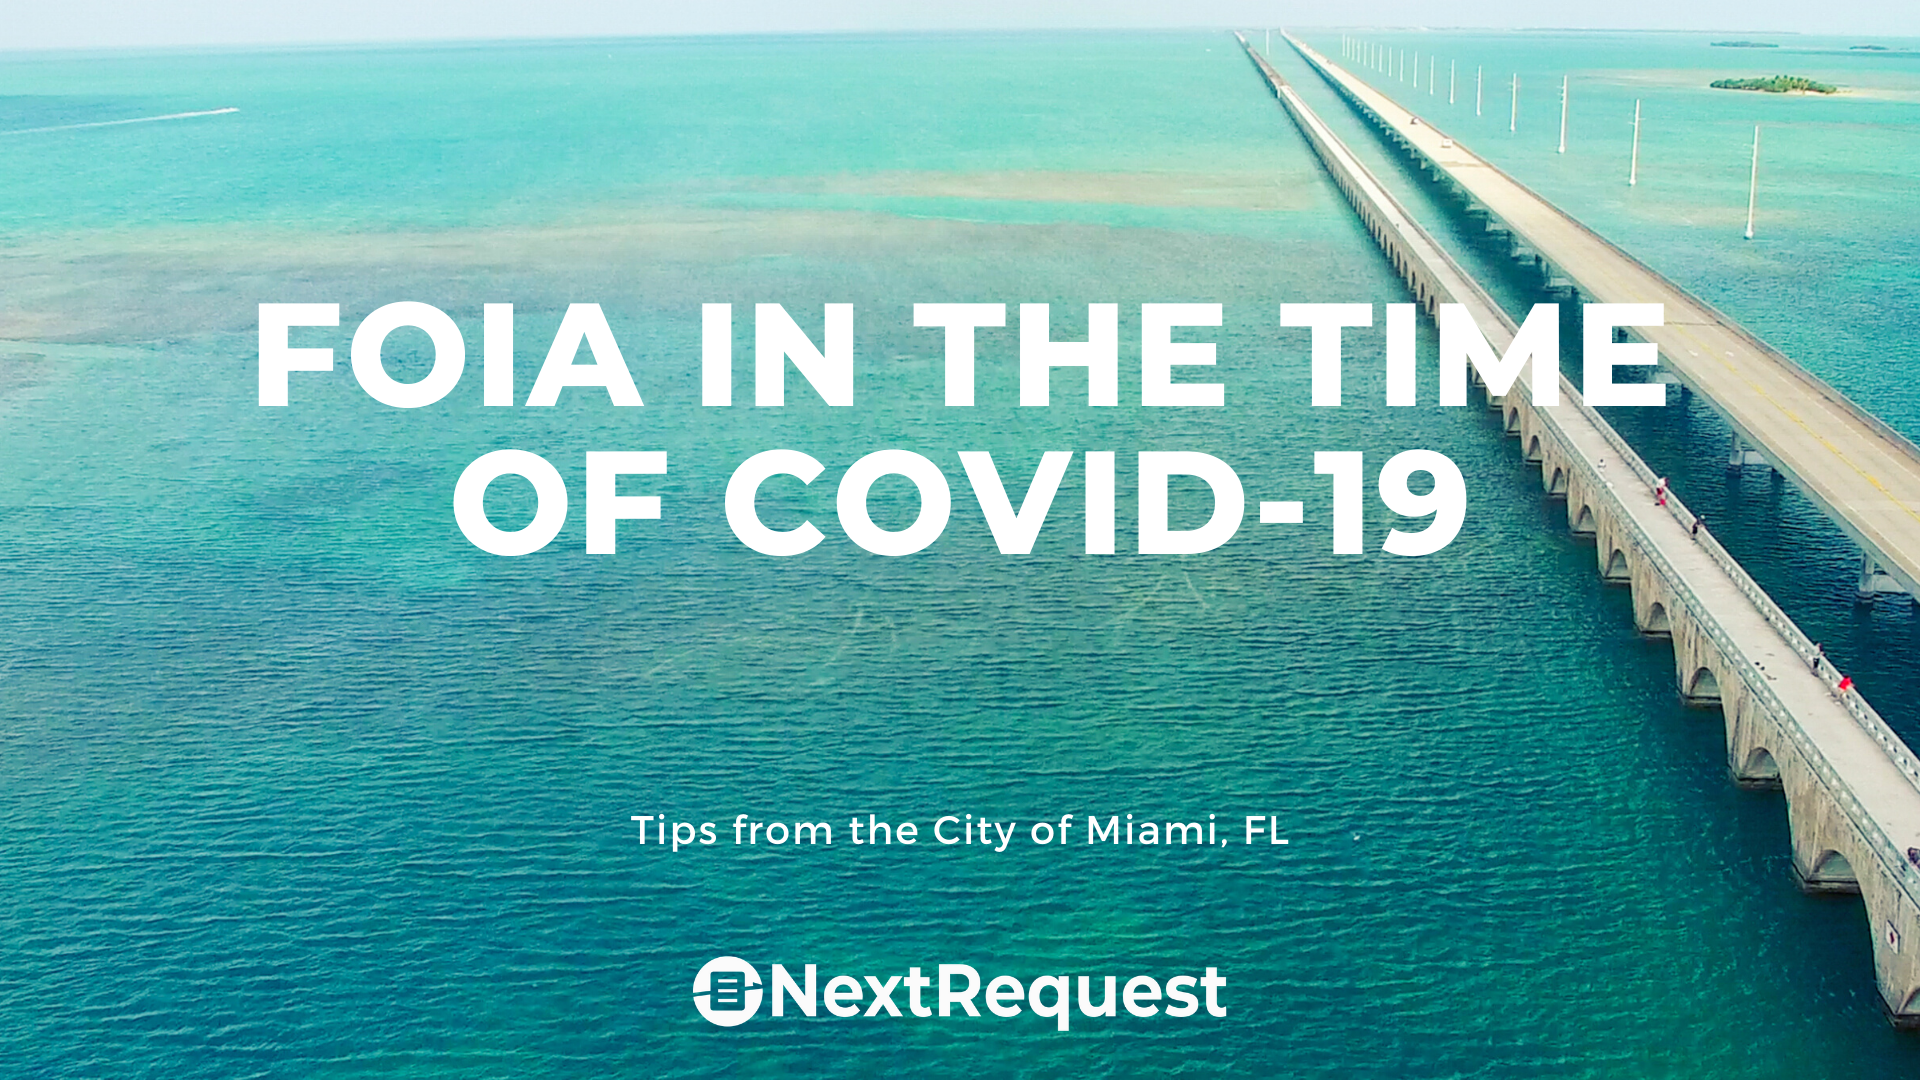 Sunshine Requests in the Time of COVID-19: Tips from the City of Miami